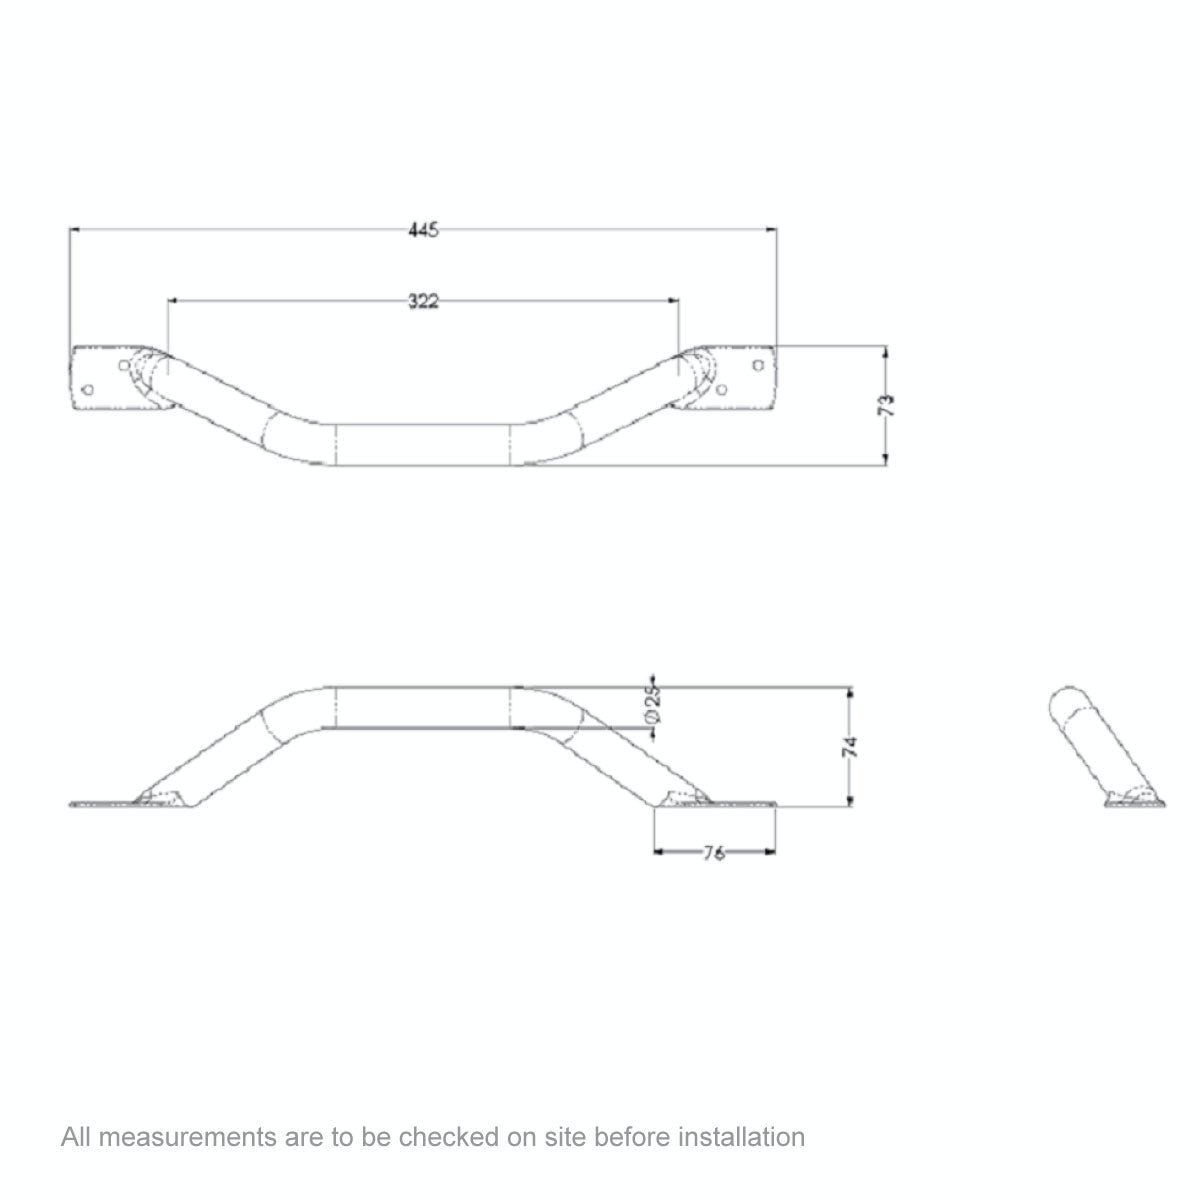 Dimensions for AKW Plastic coated steel cranked grab rail 445mm